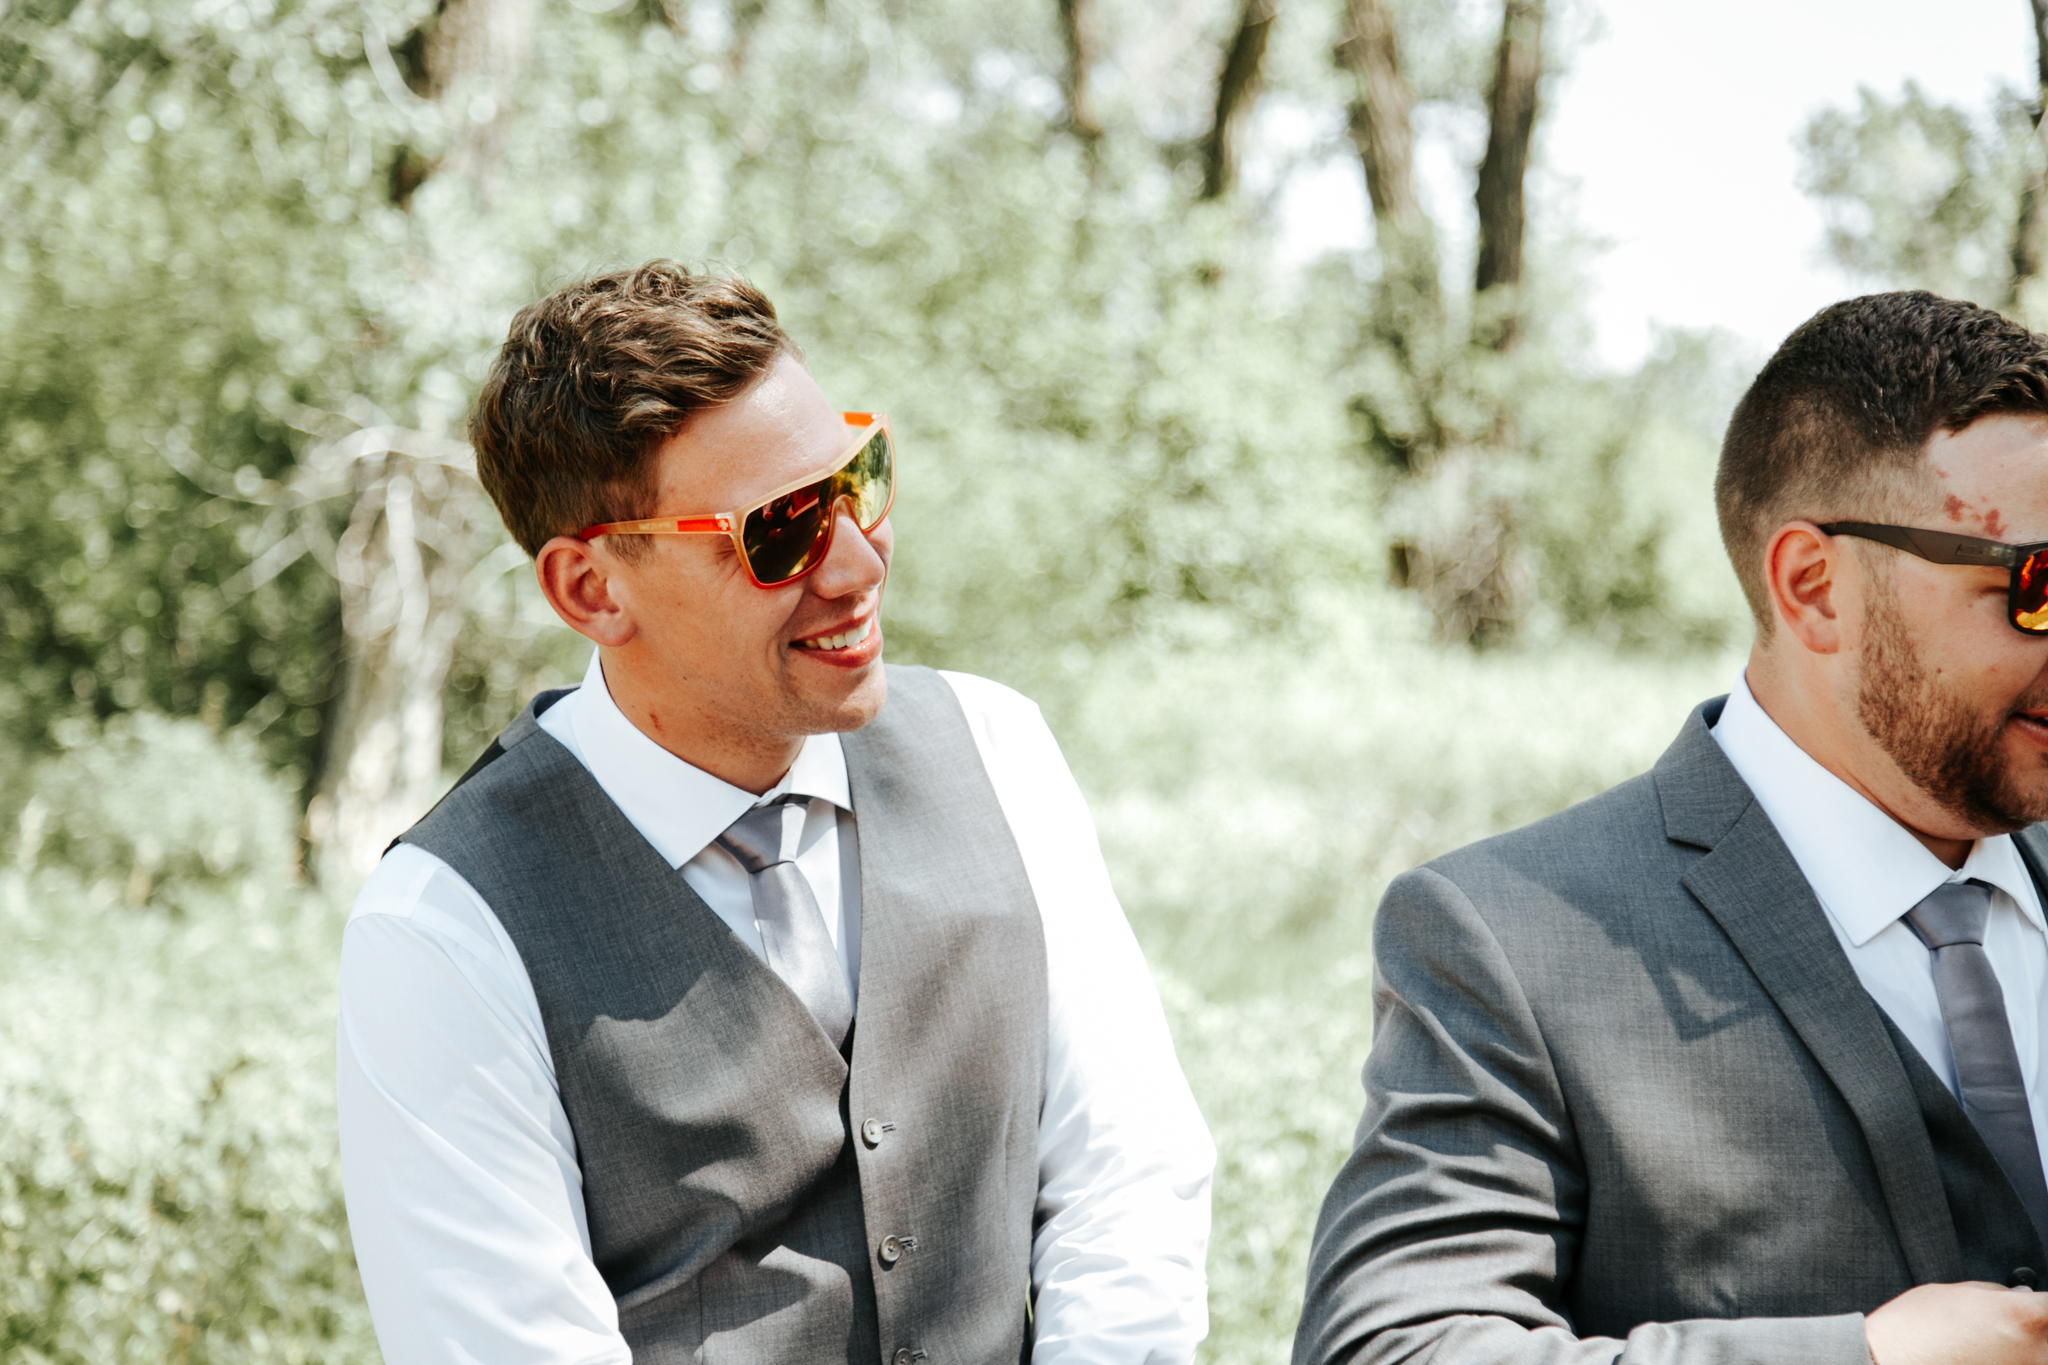 lethbridge-wedding-photographer-love-and-be-loved-photography-trent-danielle-galt-reception-picture-image-photo-108.jpg